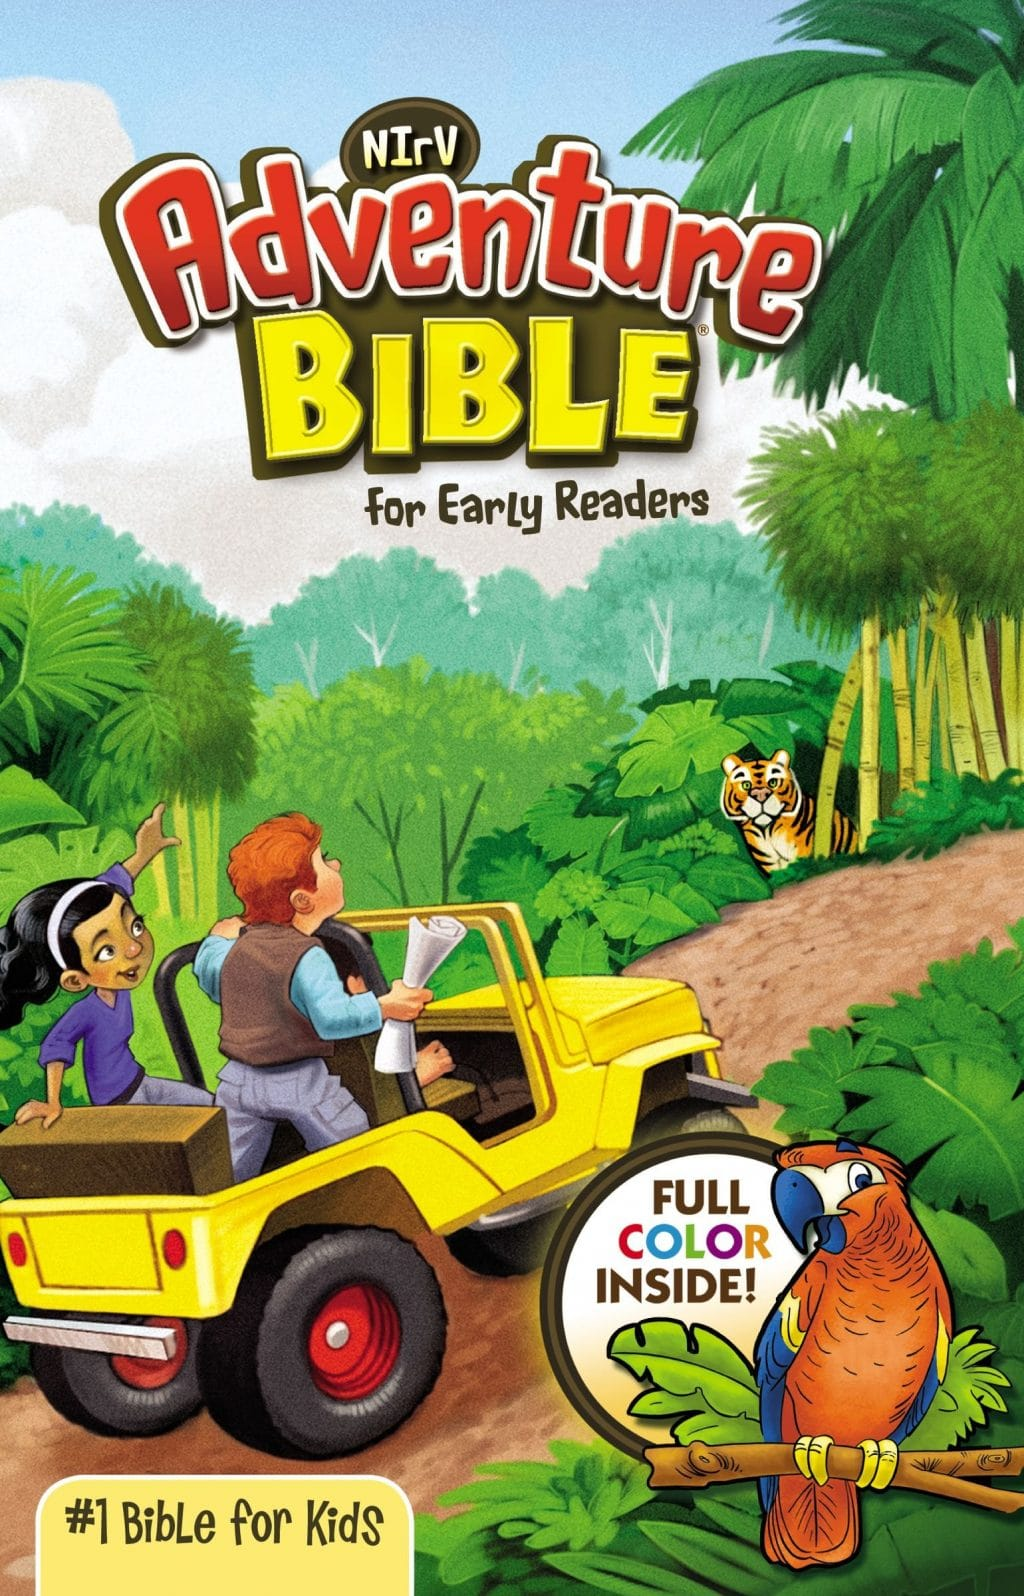 Adventure Bible For Early Readers Nirv Ebook Only 2 99